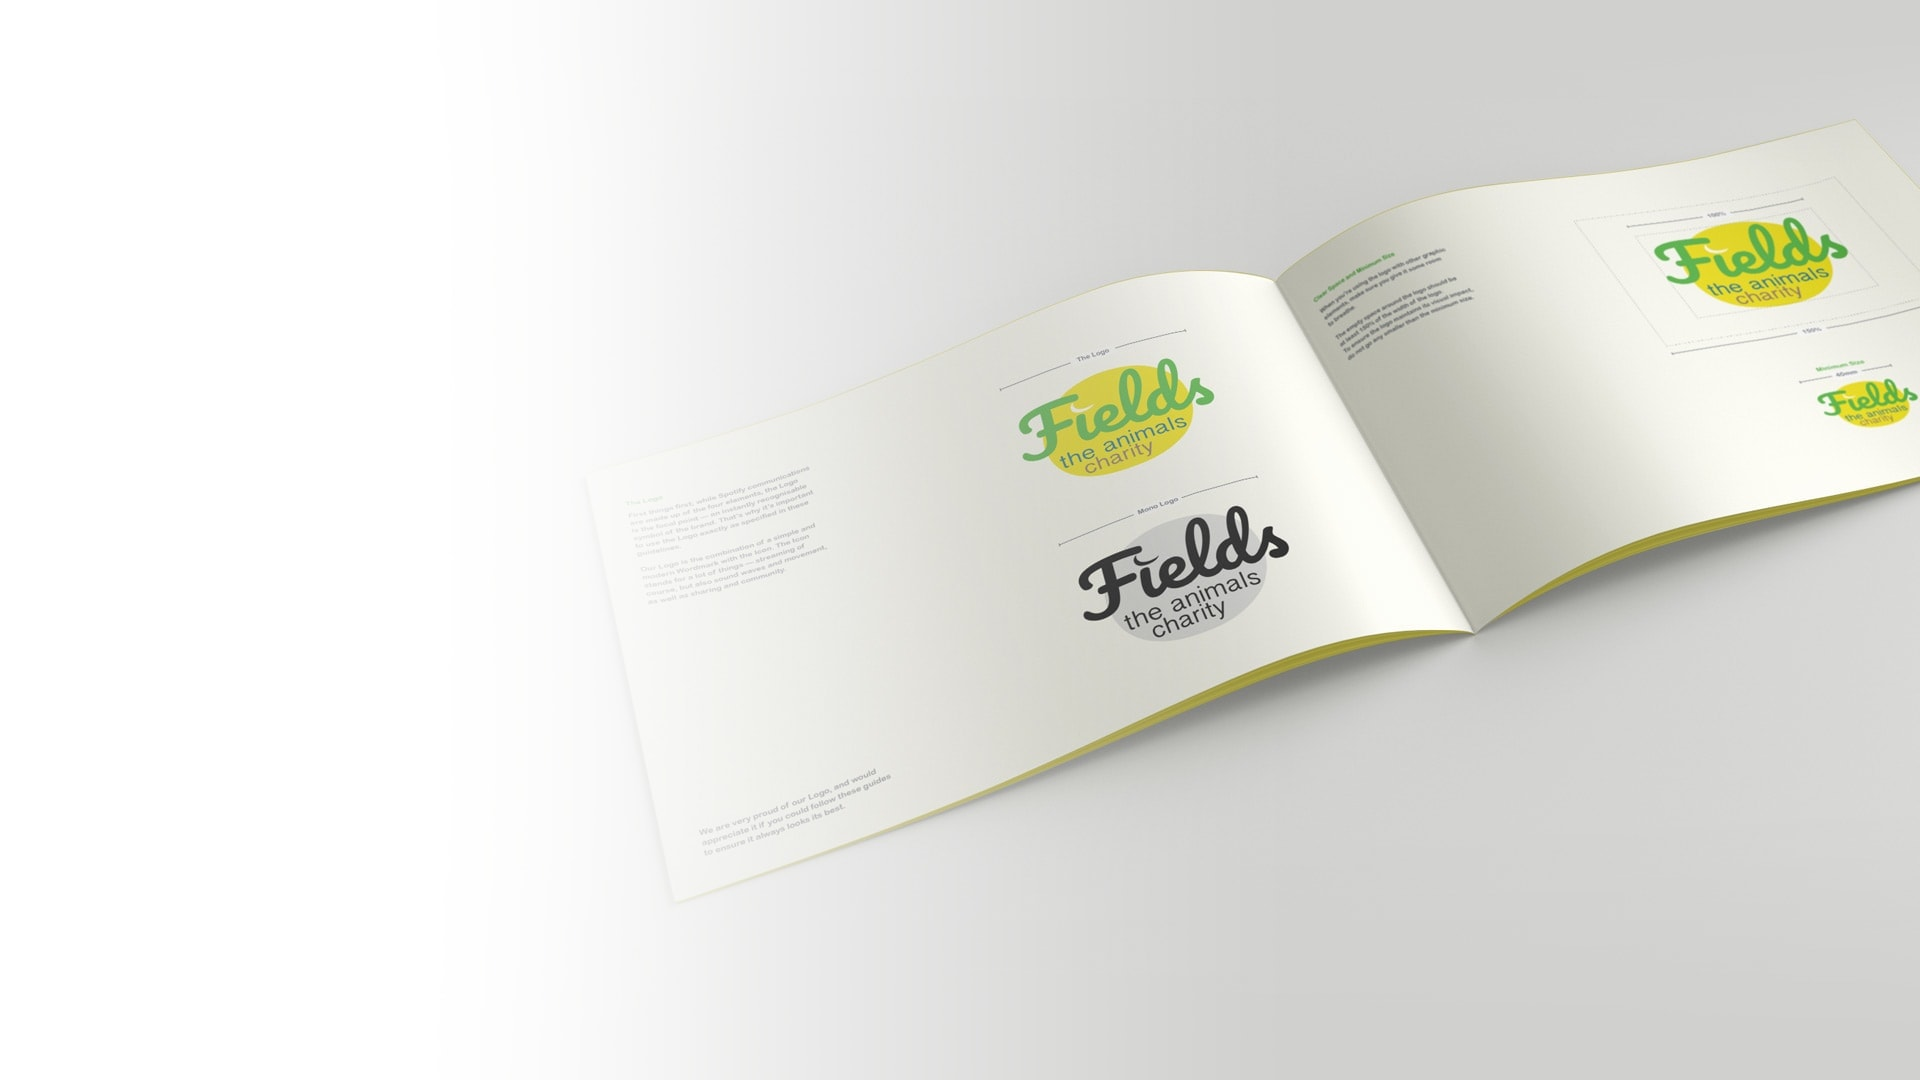 Polkadot agency are specialist brand guideline designers based in yeovil, somerset, uk